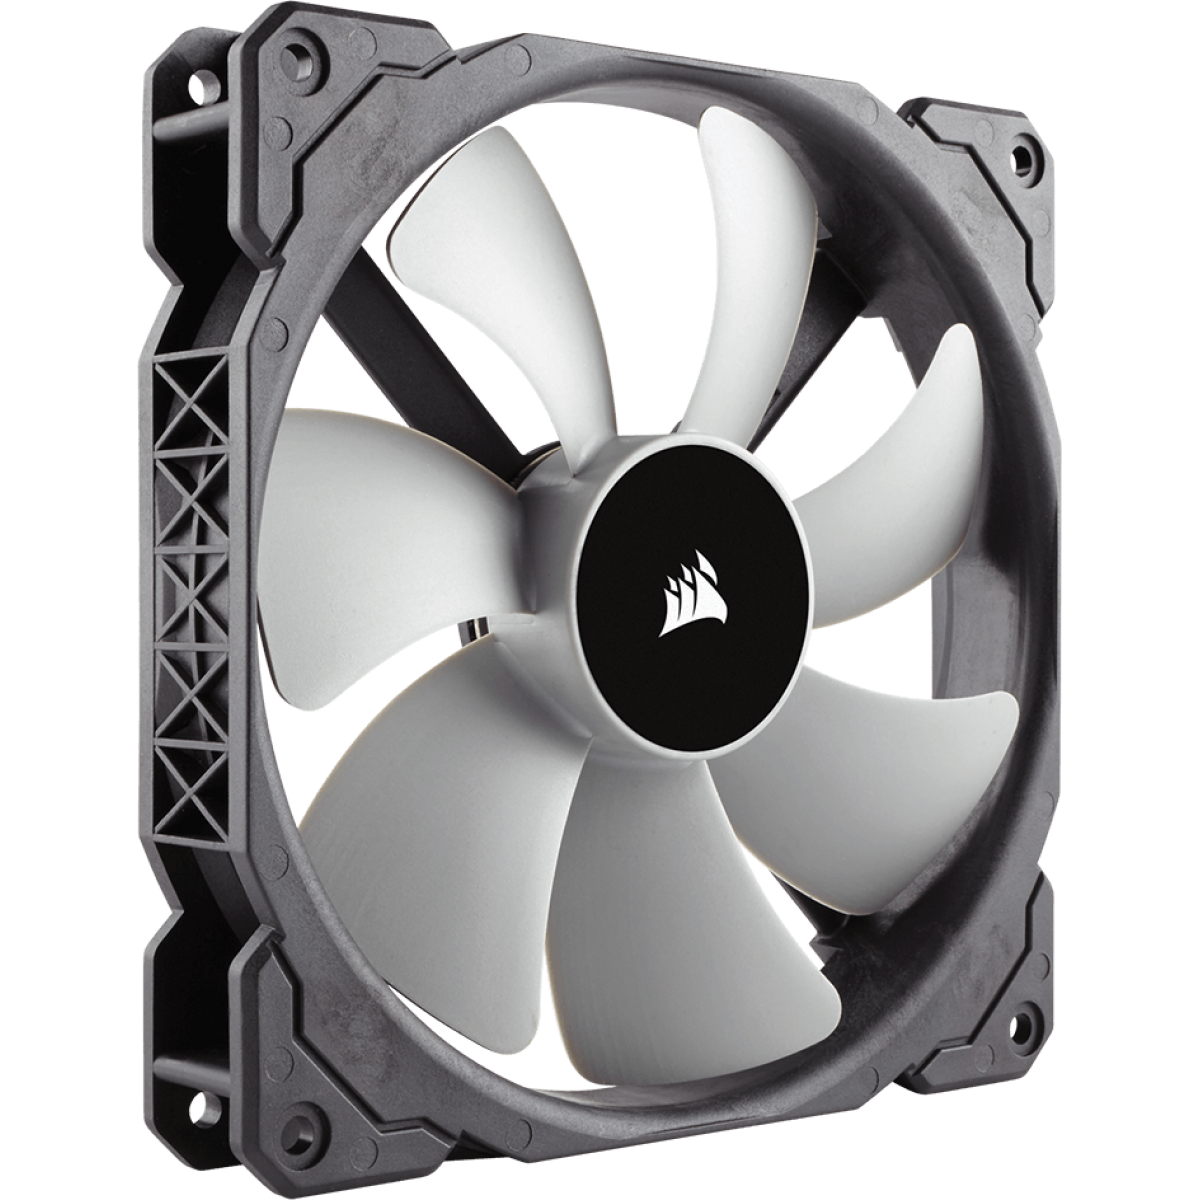 Kit Fan com 2 Unidades Corsair ML140 PRO, 140mm, CO-9050044-WW